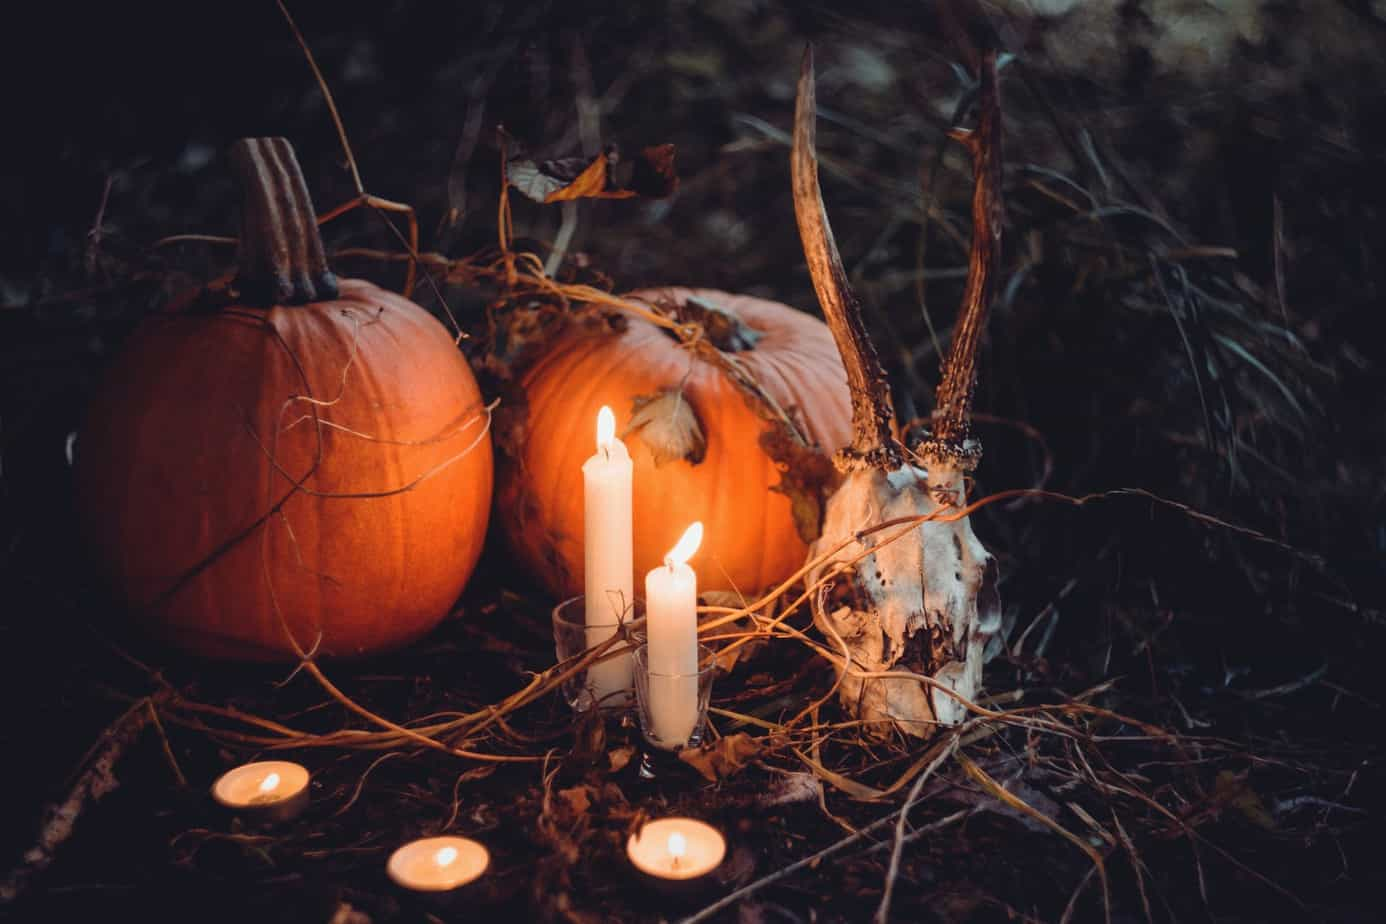 29 Homemade Halloween Indoor Decorations (TikTok DIY Trend 2020)